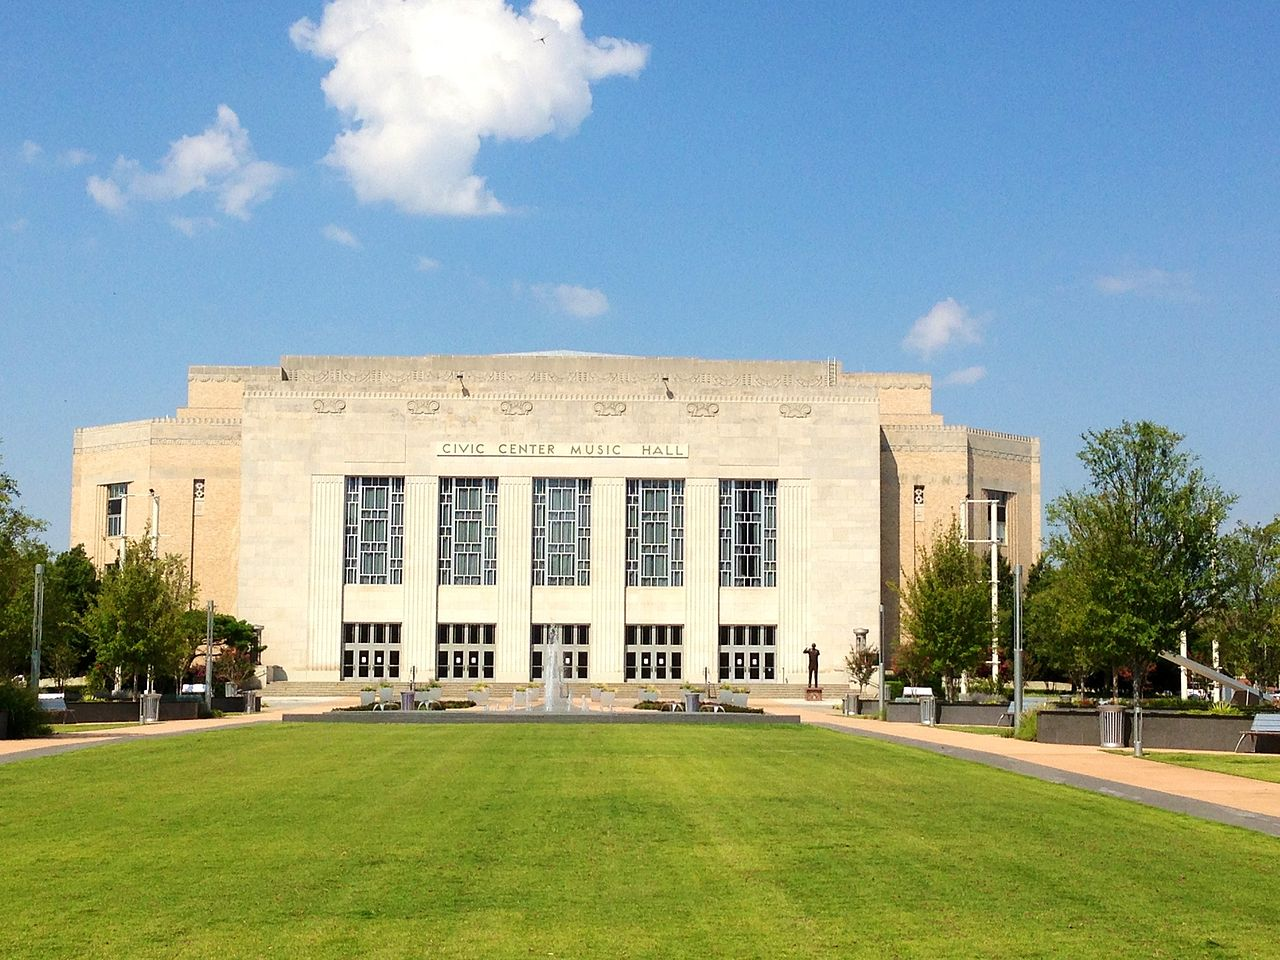 Civic Center Music Hall was built in 1937 and originally called Municipal Auditorium. It is listed on the National Register of Historic Places.